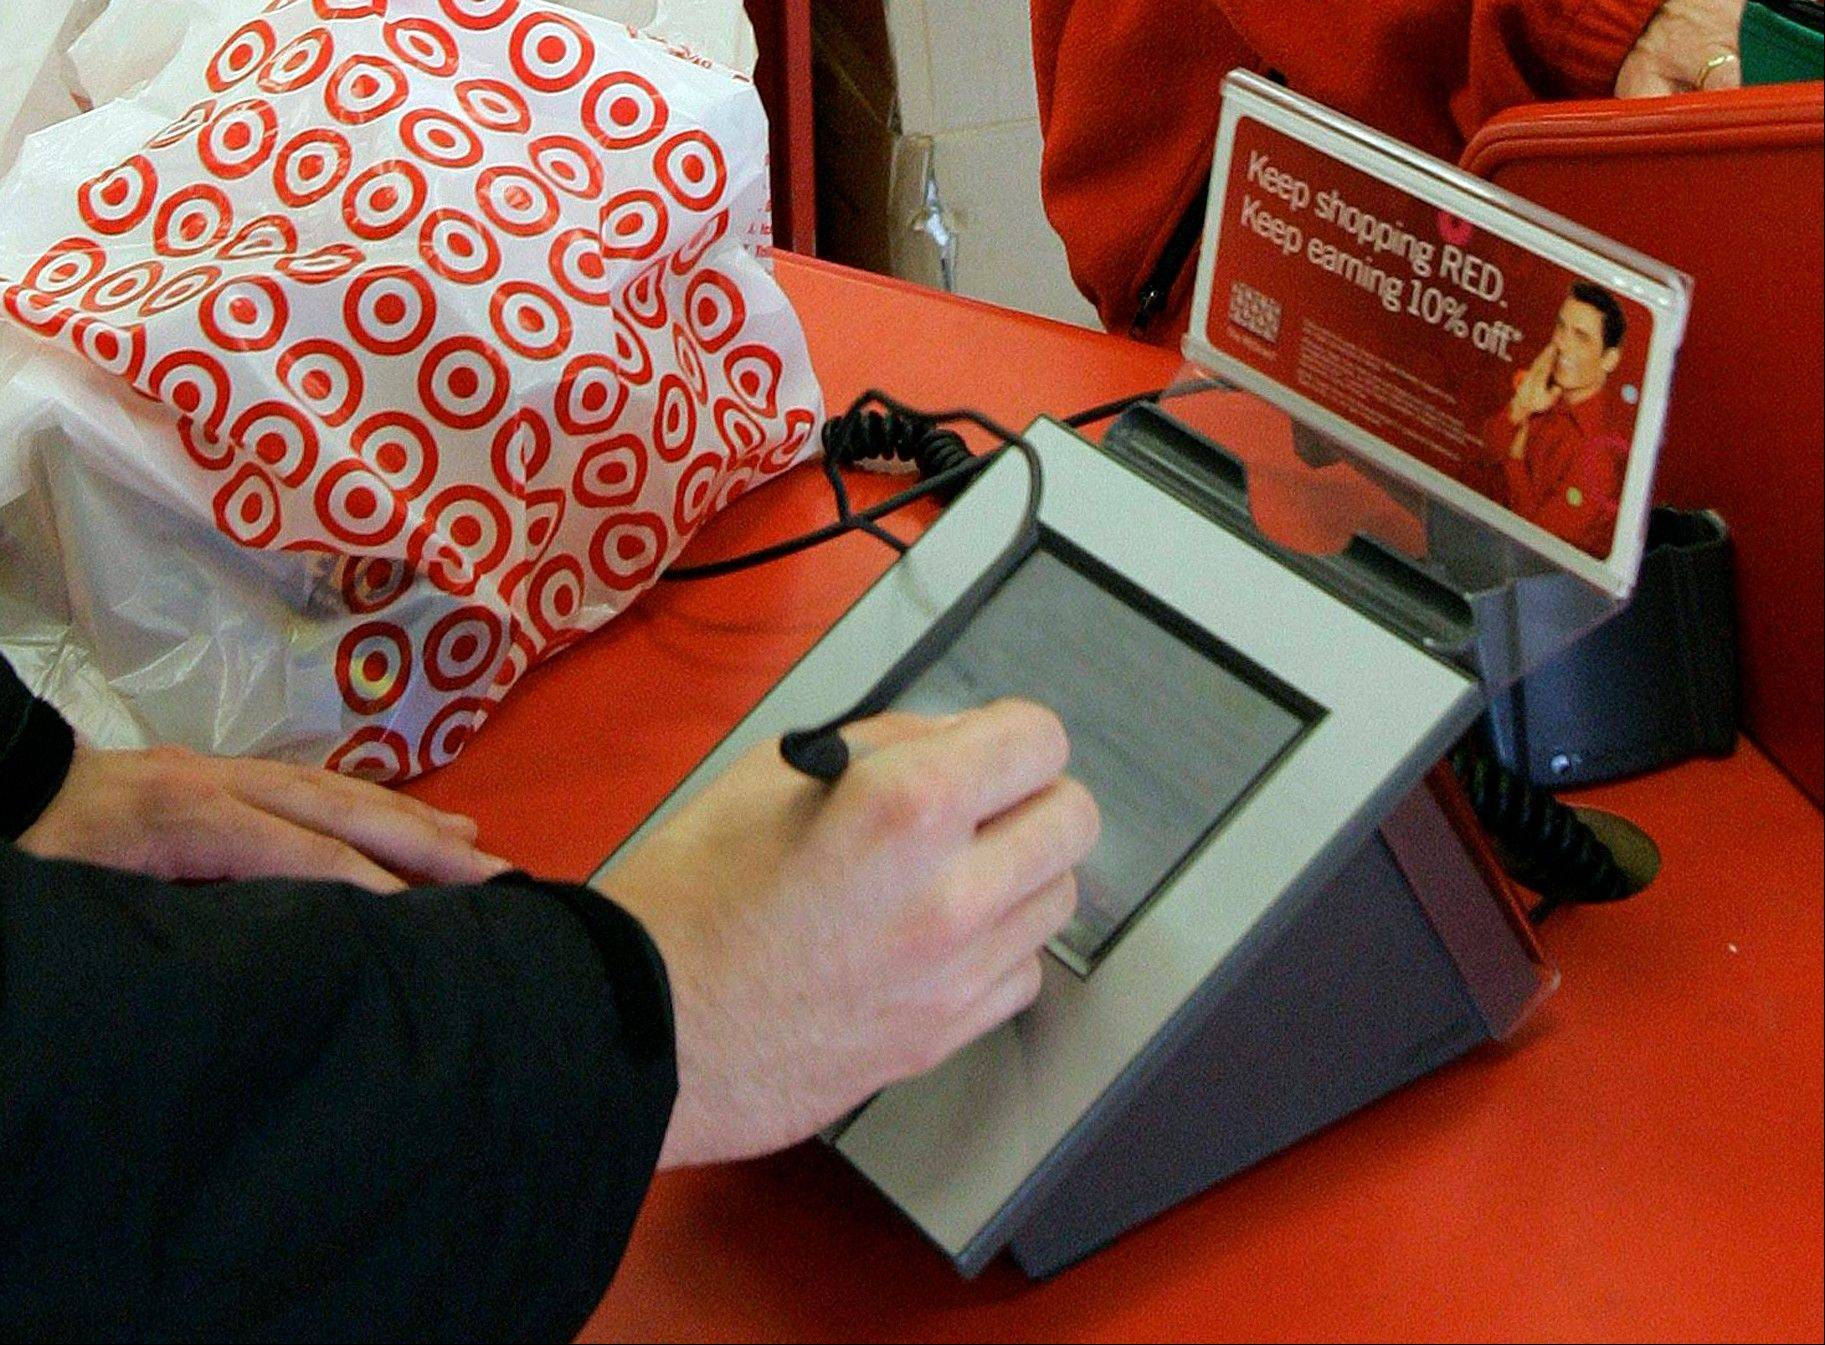 Weak U.S. card security made Target a juicy target